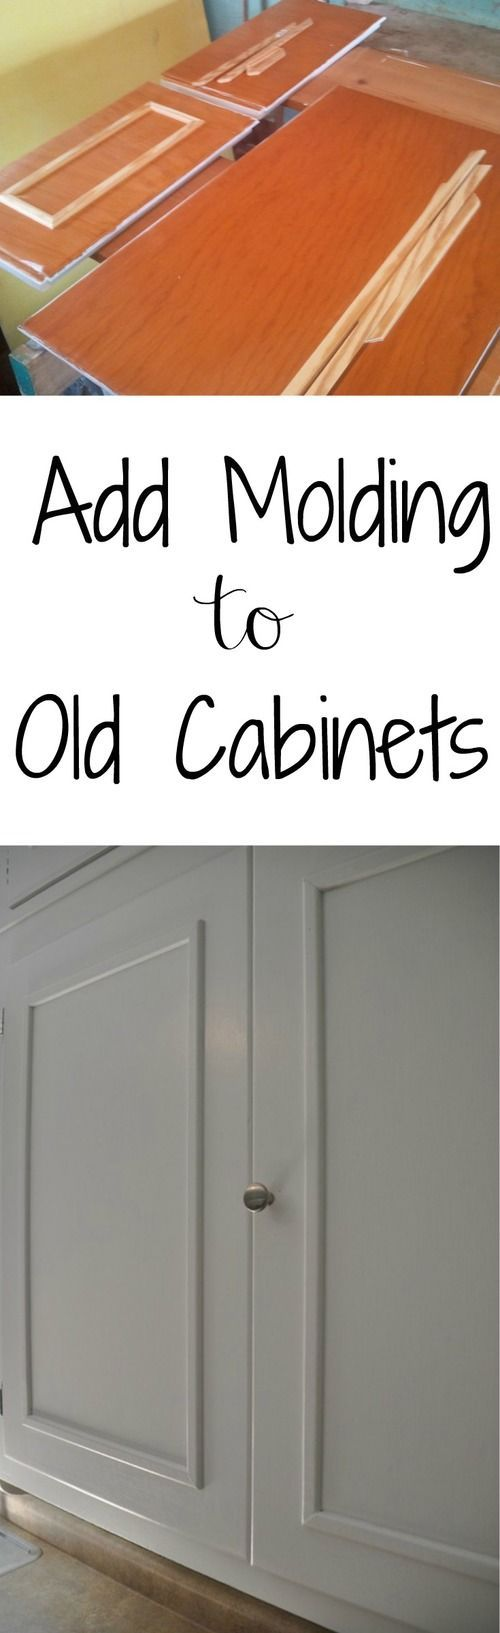 best 25+ cabinet doors ideas on pinterest | rustic kitchen, rustic